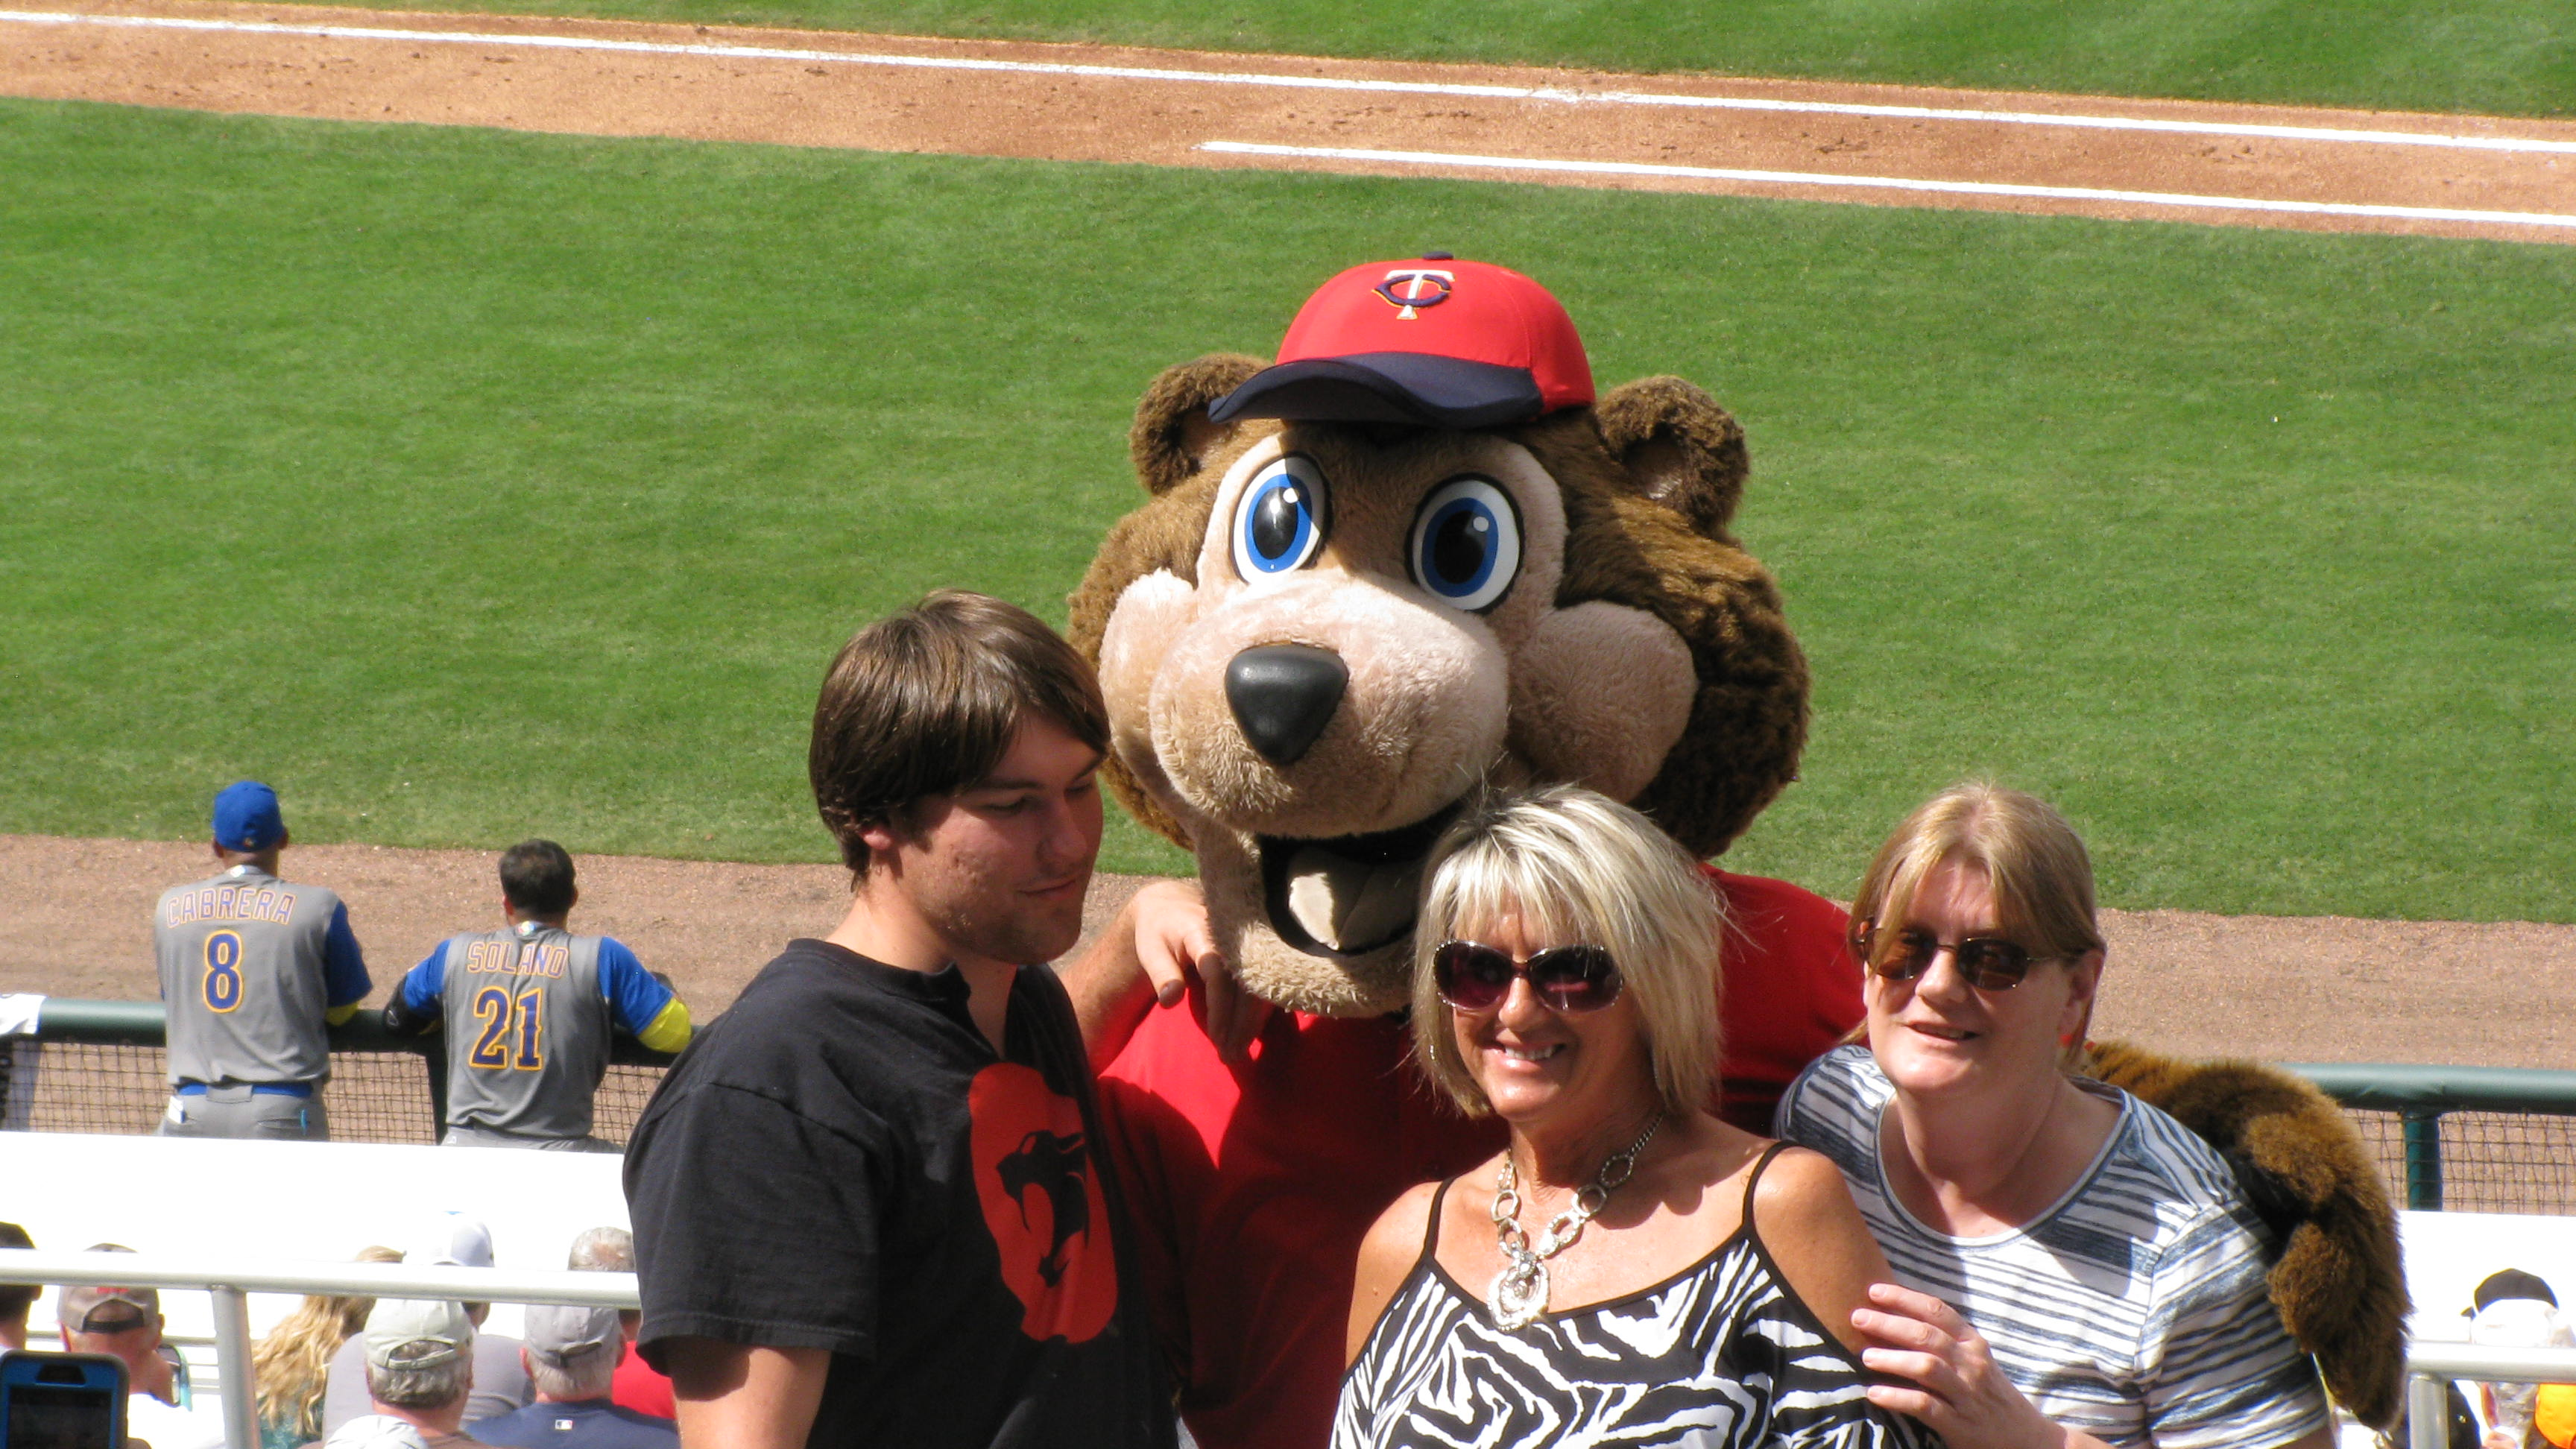 Everyone Loves the Mascot